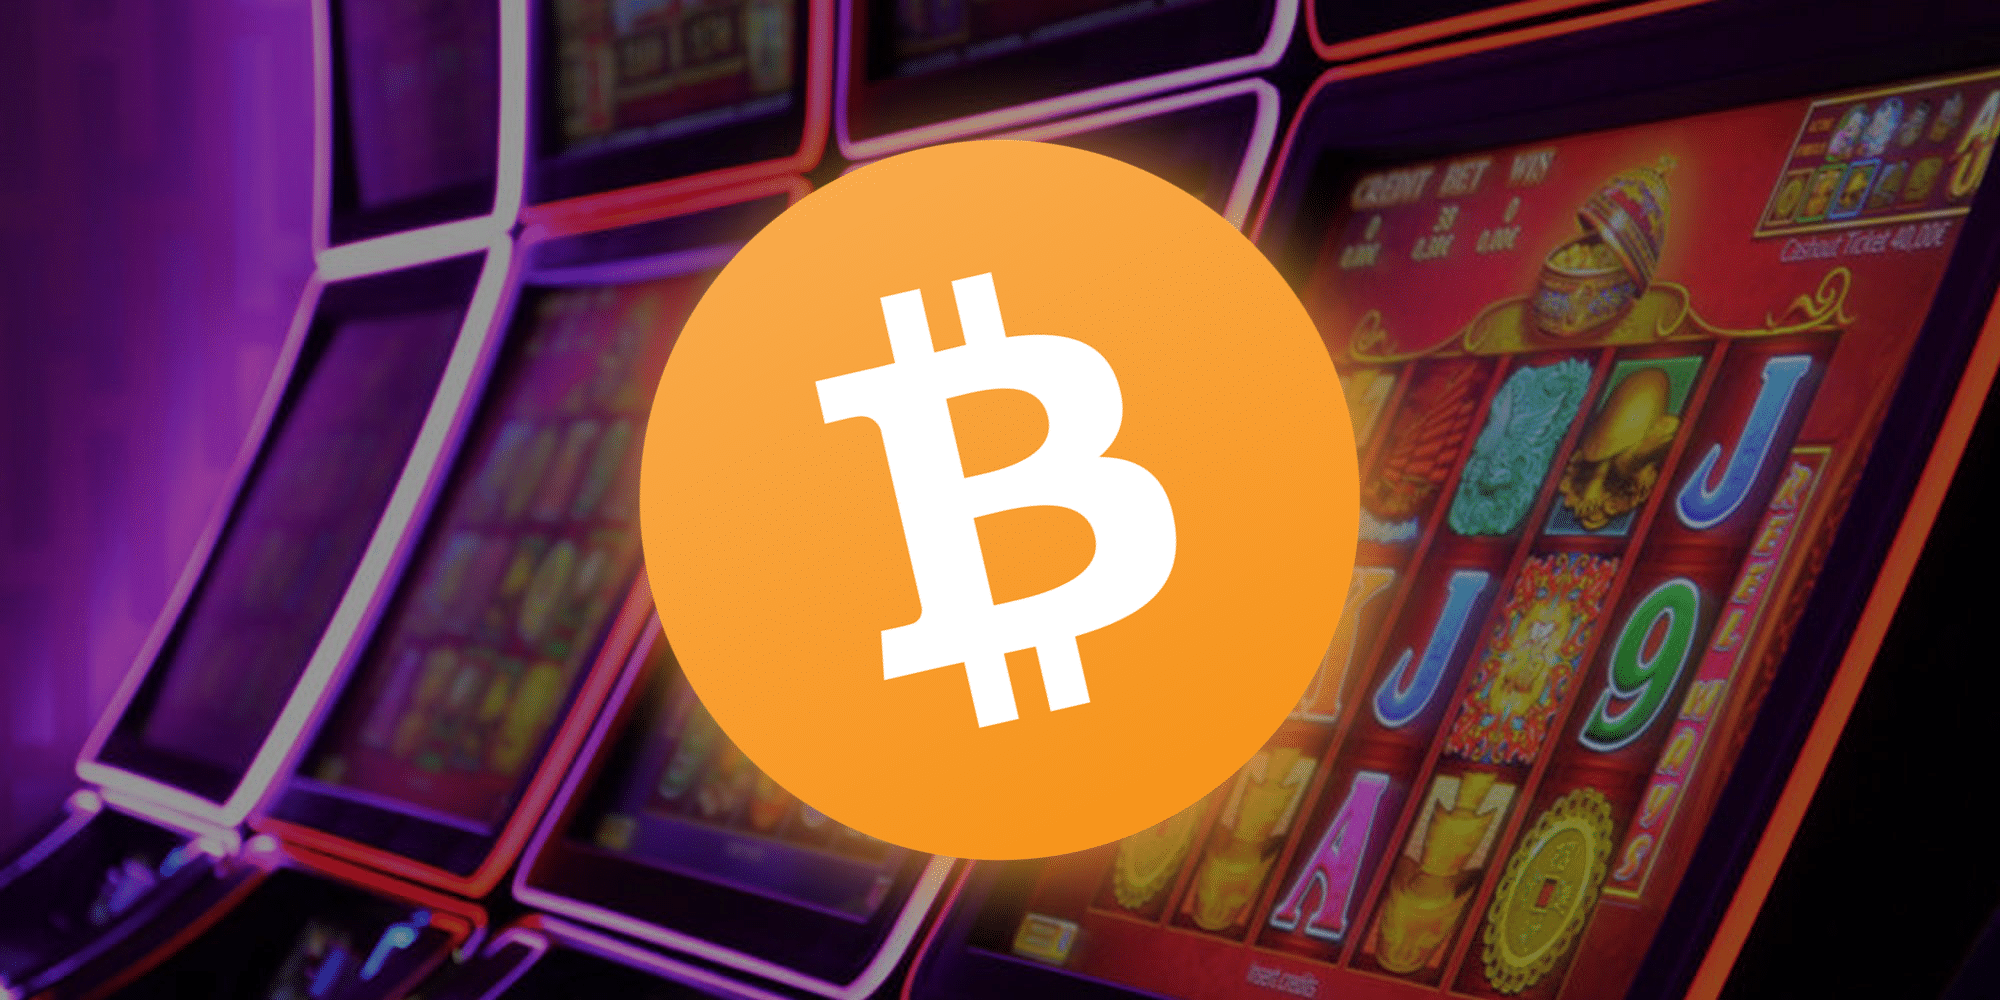 Bitcoin casino play for free bitcoin slot